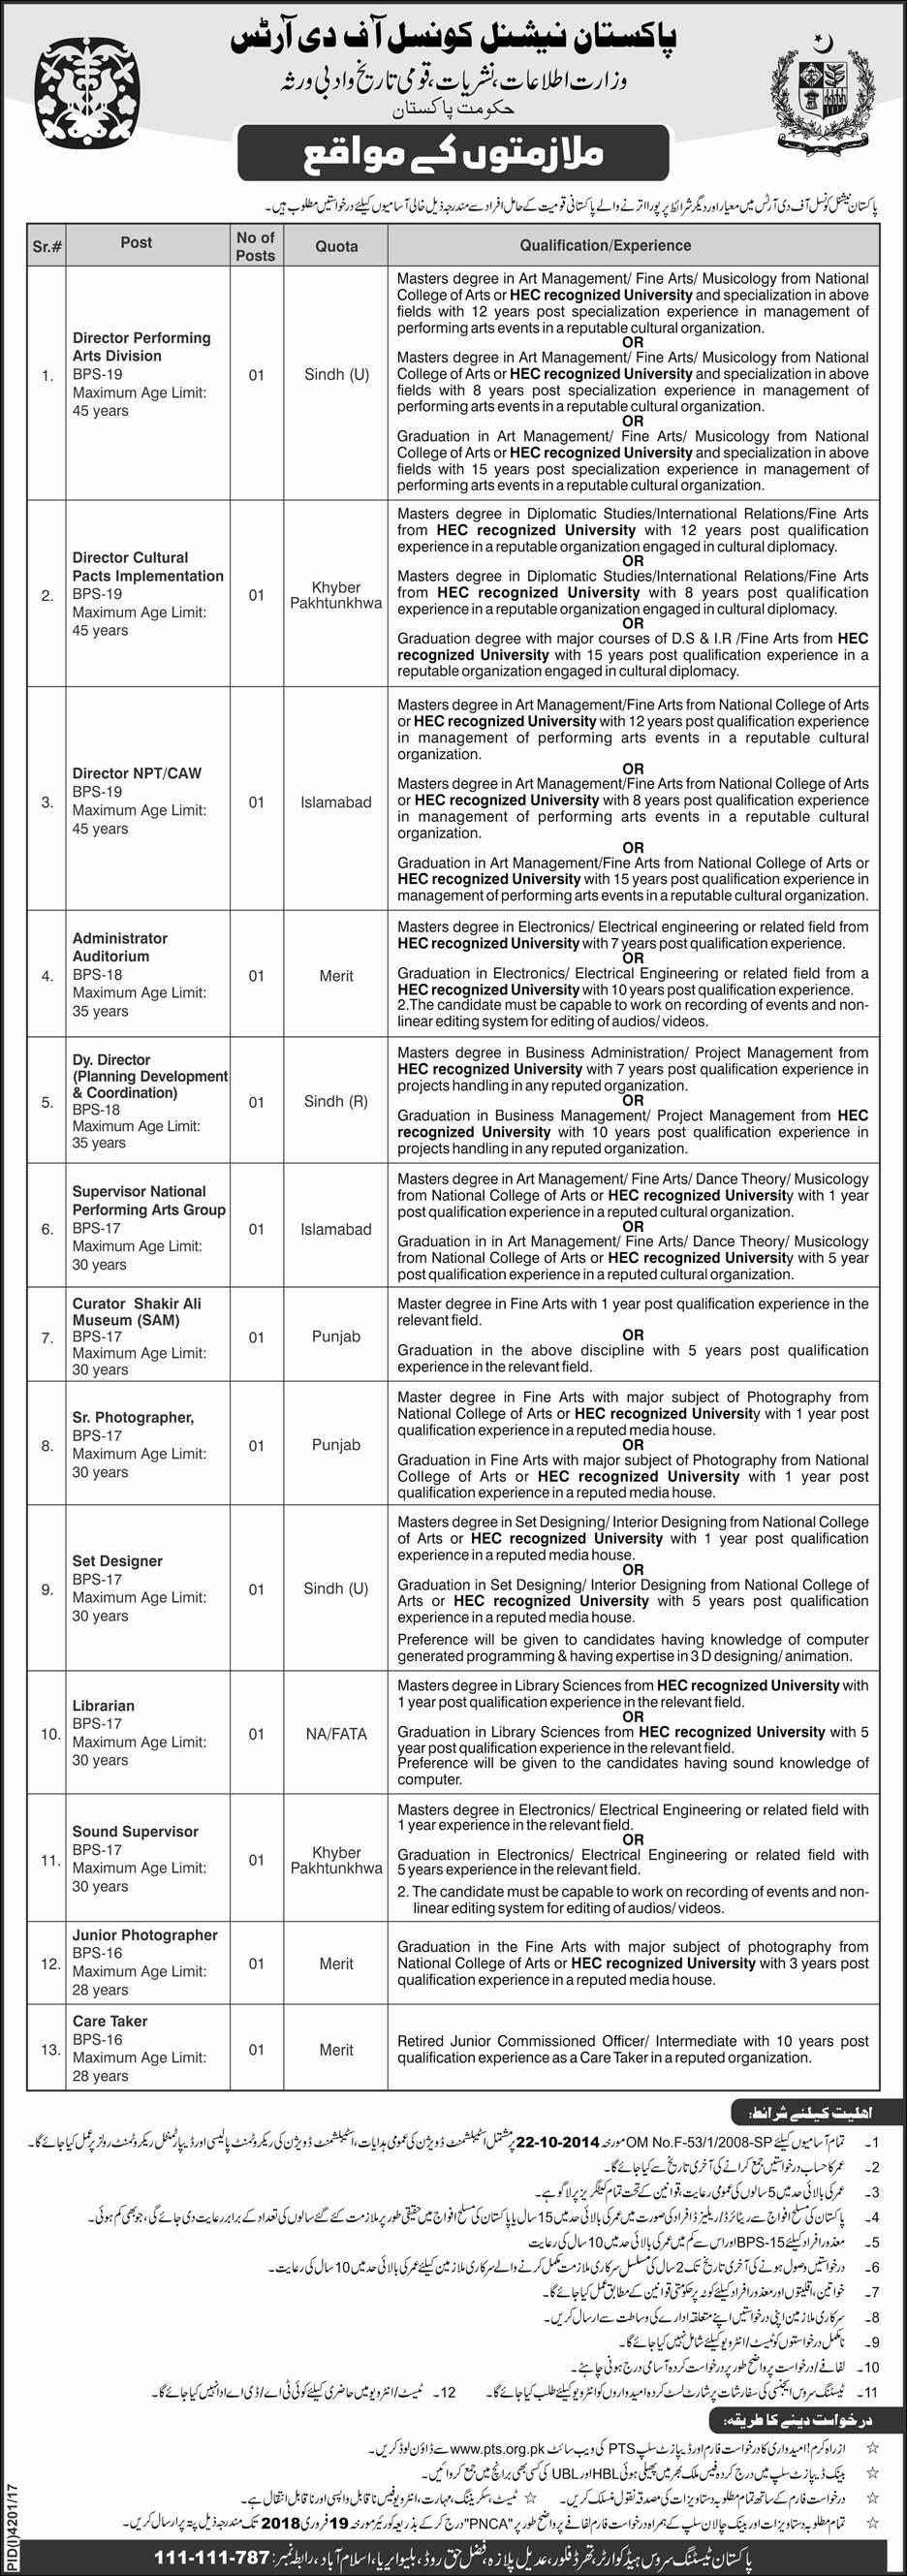 National Council of the Arts Pakistan 13 Jobs 05 February 2018 Daily Express Newspaper